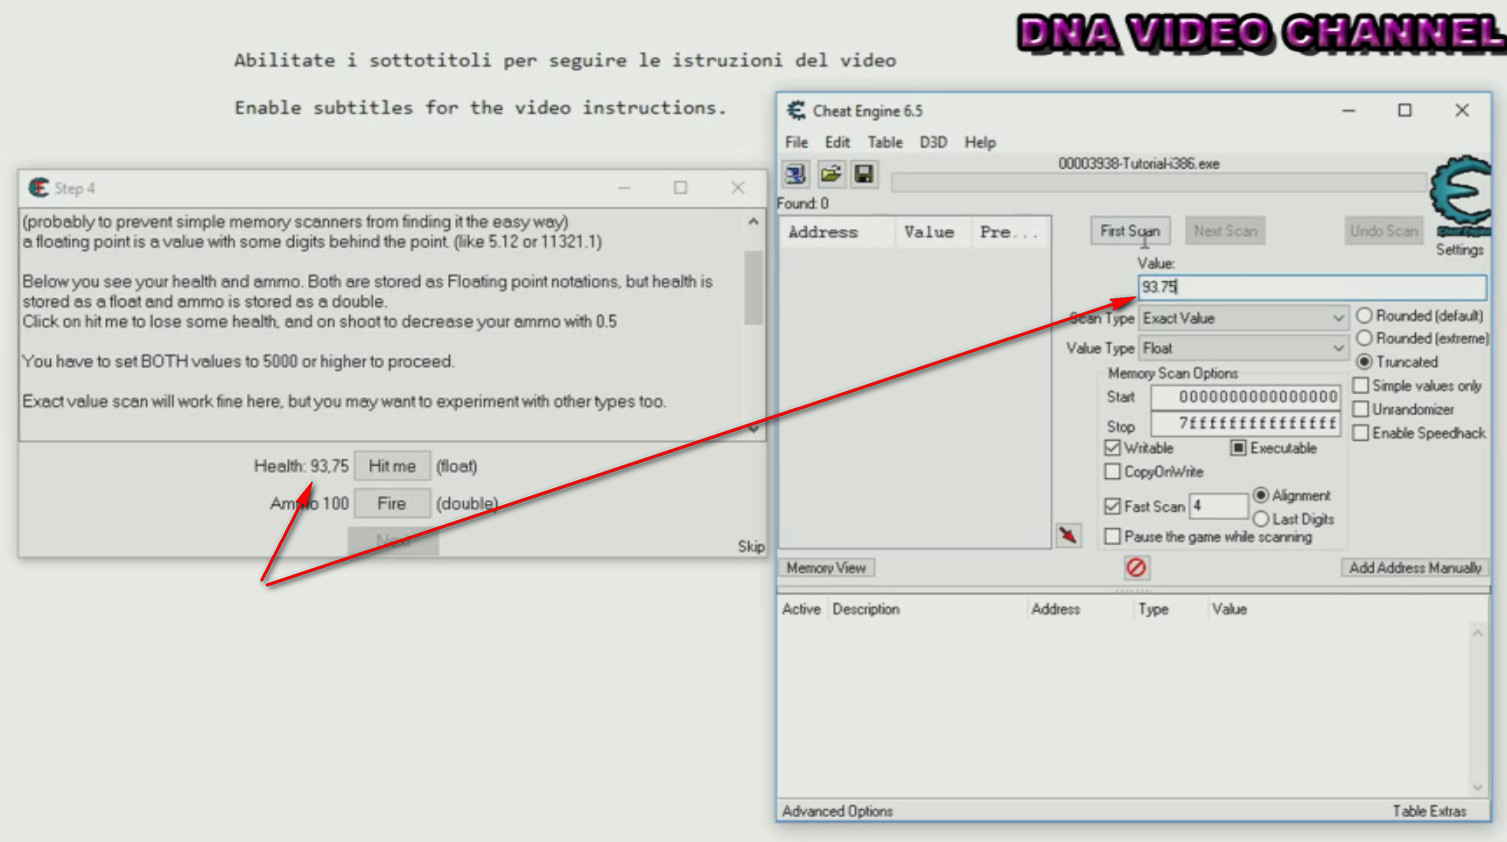 Cheat Engine Tutorial search for decimal values entering values